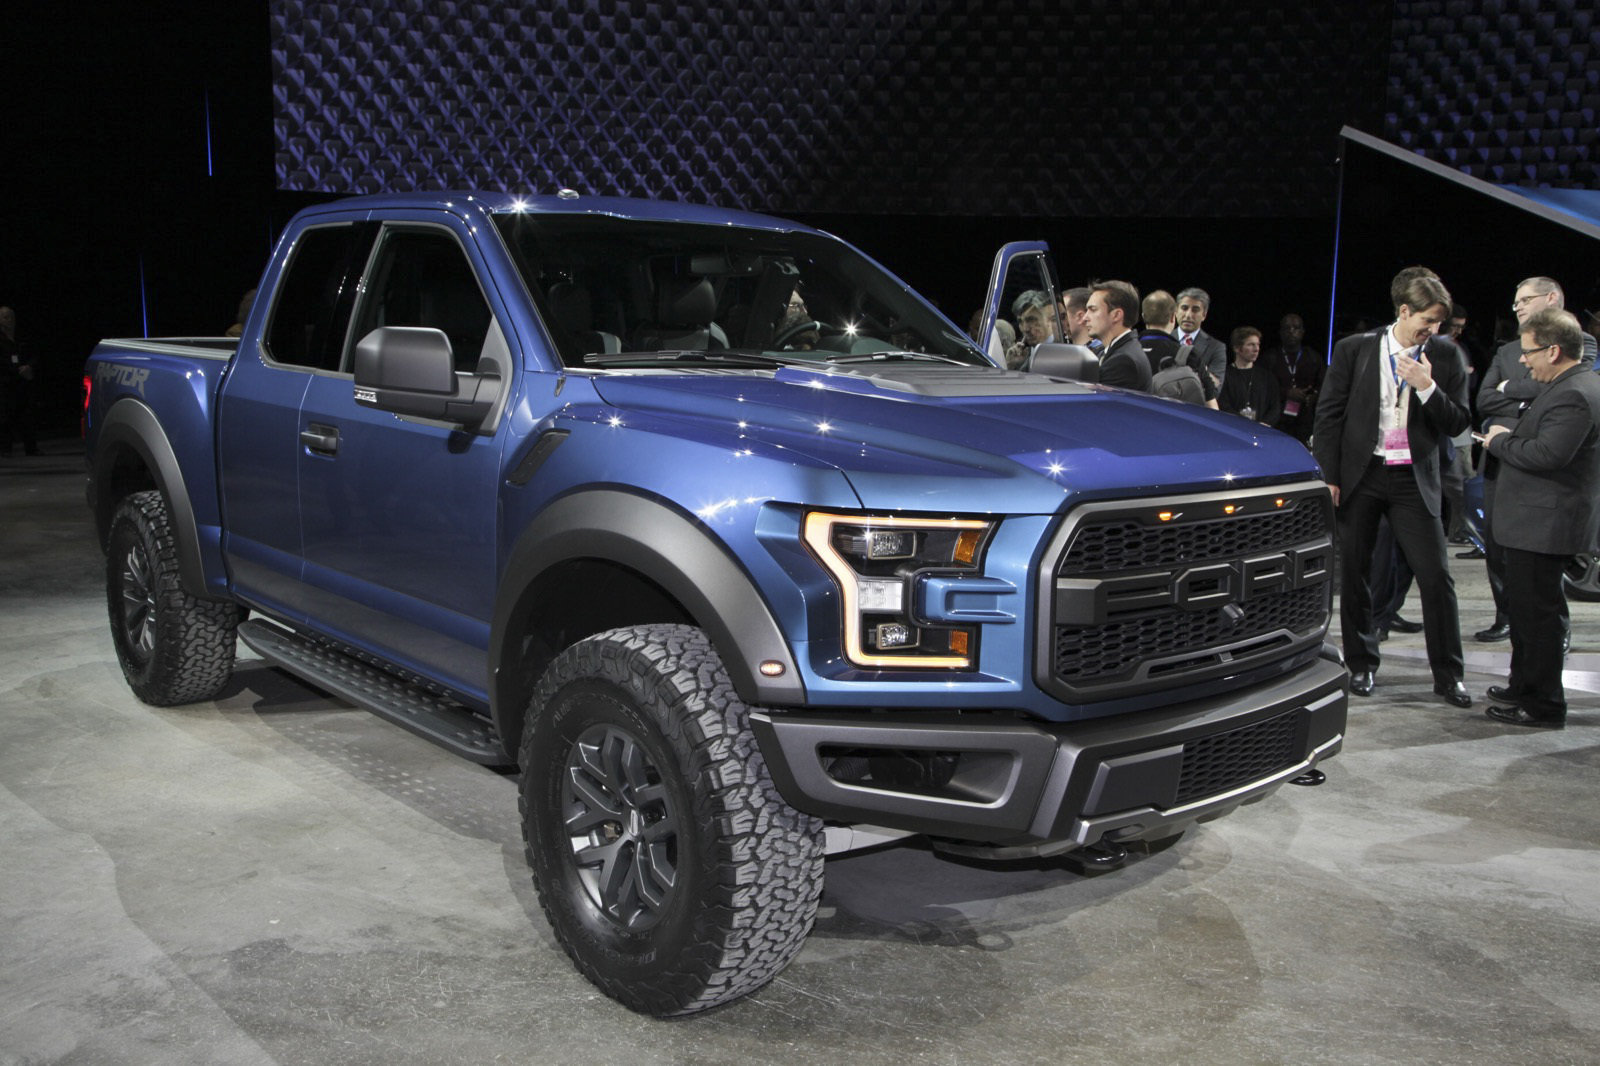 2017 ford f 150 raptor picture 613167 truck review top speed. Black Bedroom Furniture Sets. Home Design Ideas